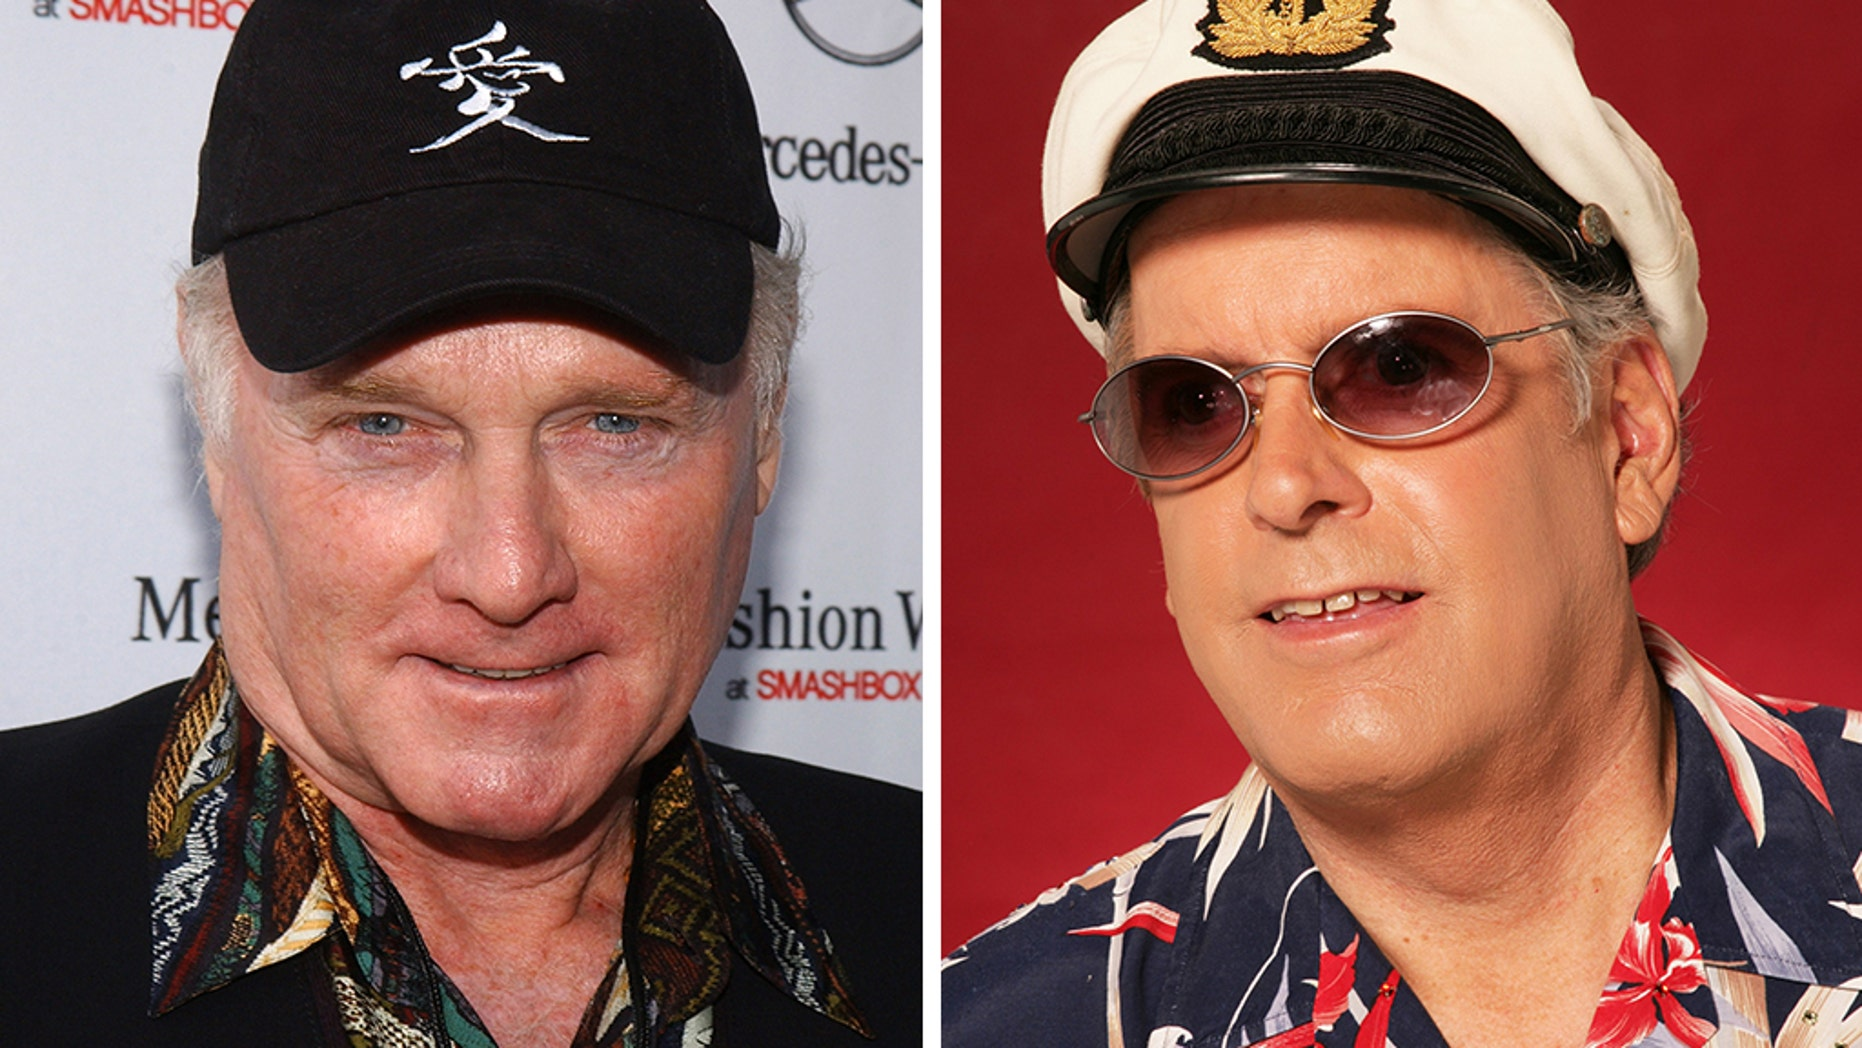 The Beach Boys' Mike Love is remembering the late Daryl Dragon, who died on Wednesday at age 76.